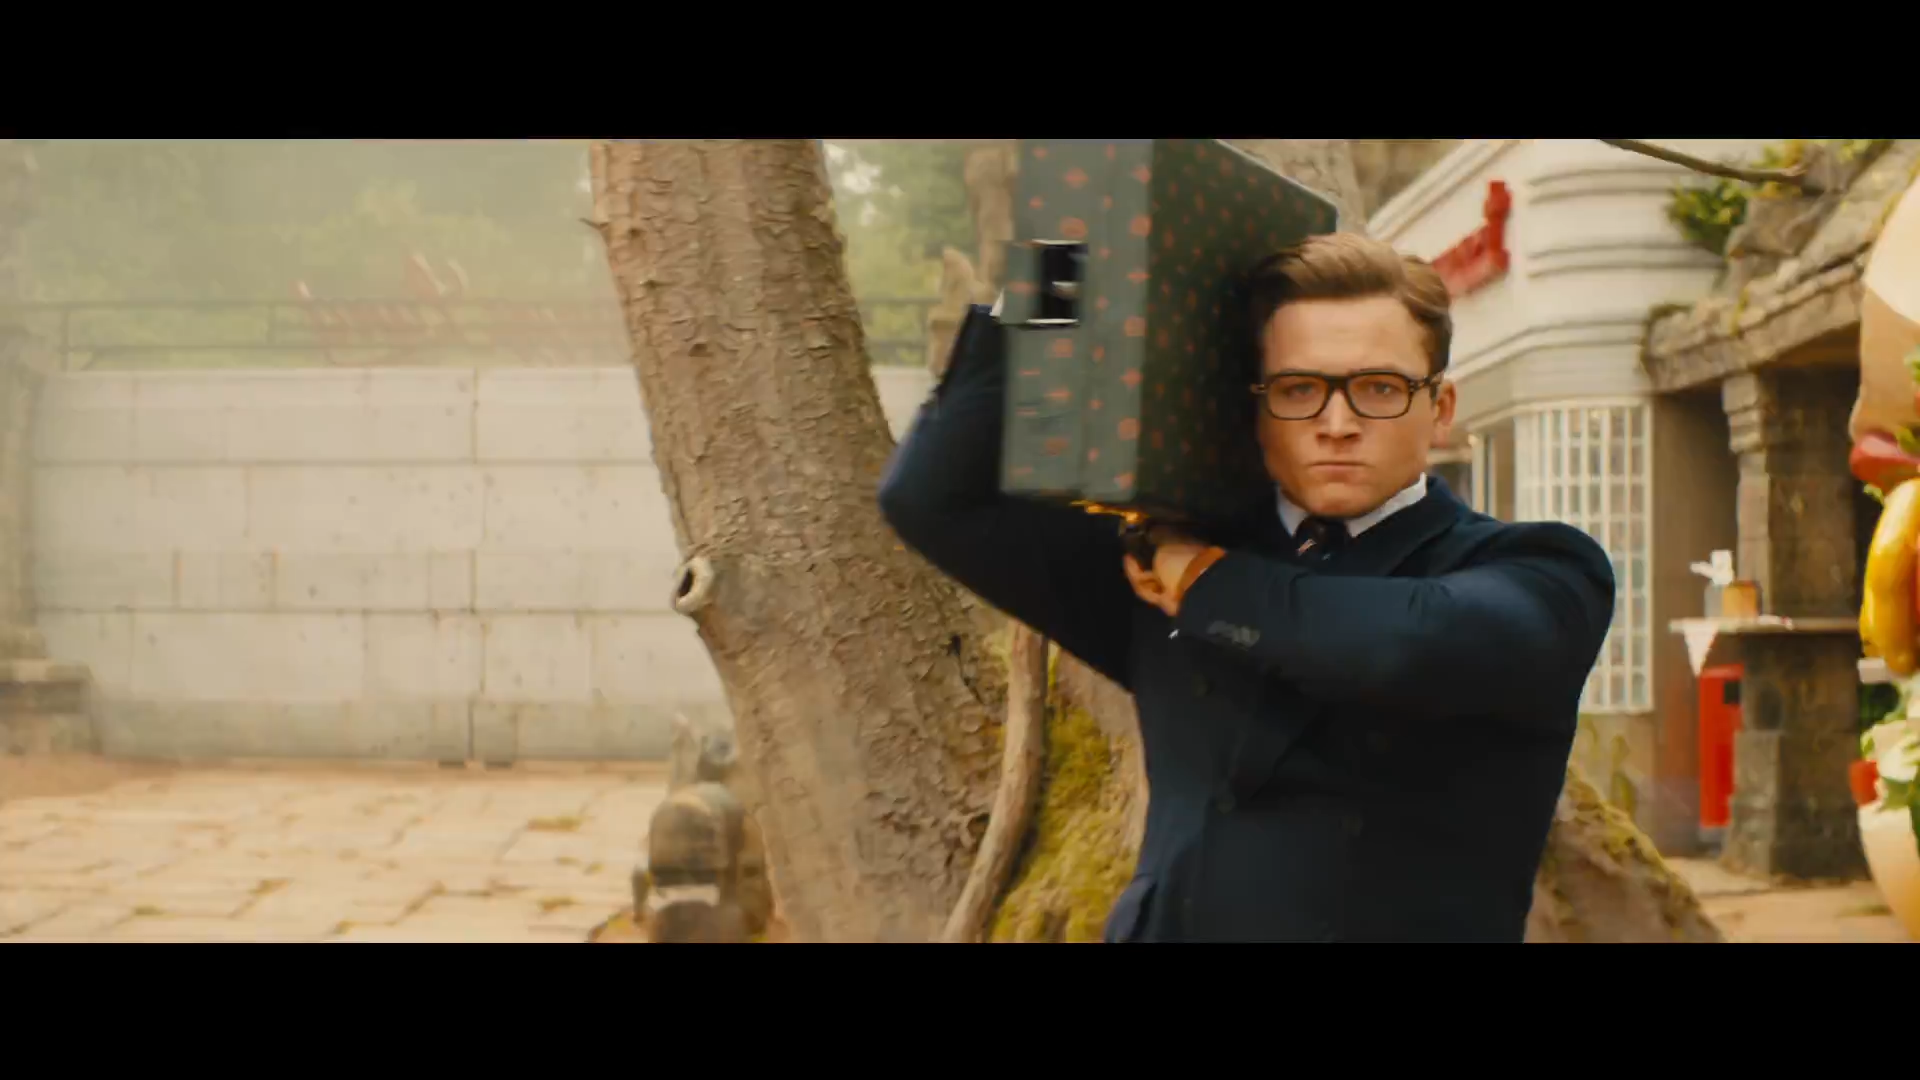 'Kingsman: The Golden Circle' Trailer to Debut Tomorrow!